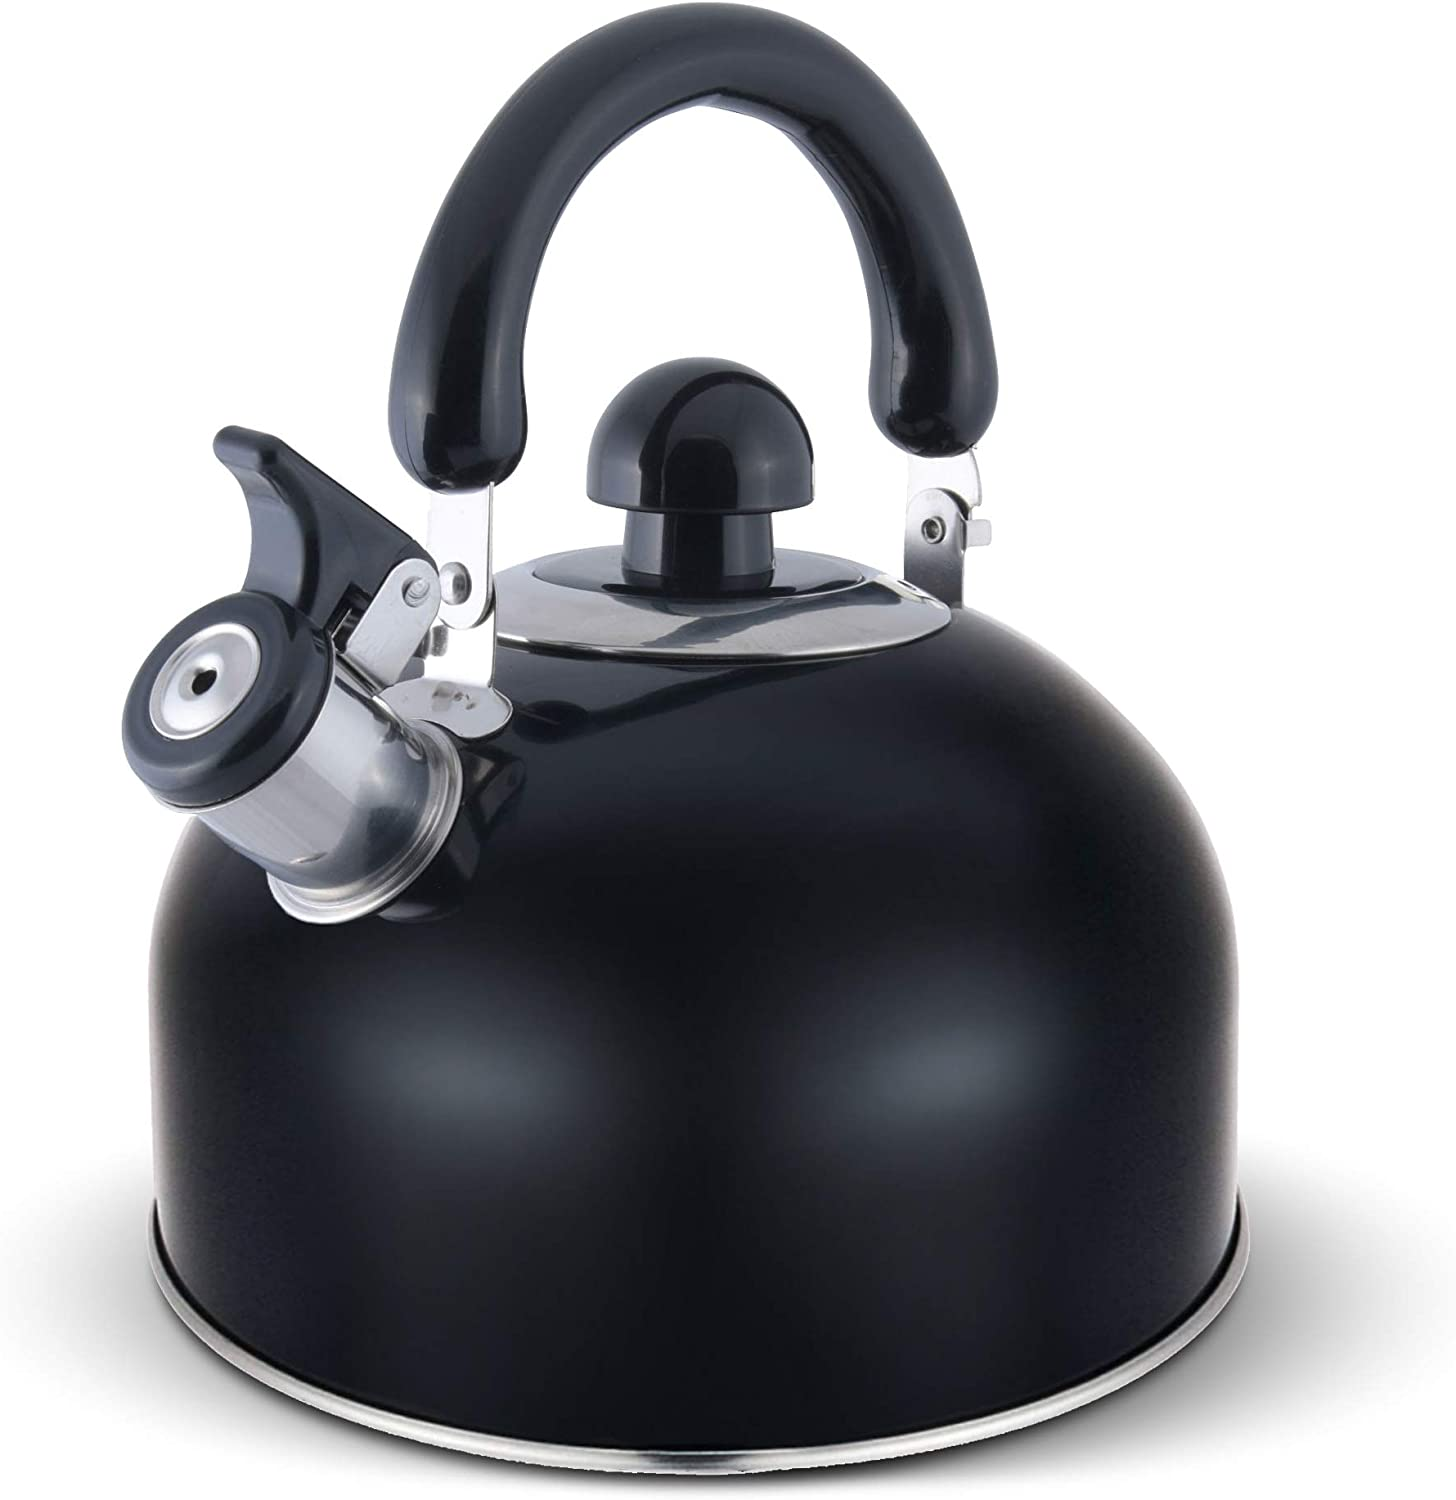 ELITRA Whistling Tea Kettle - Stainless Steel Tea Pot with Stay Cool Handle - 2.6 Quart / 2.5 Liter - (BLACK)